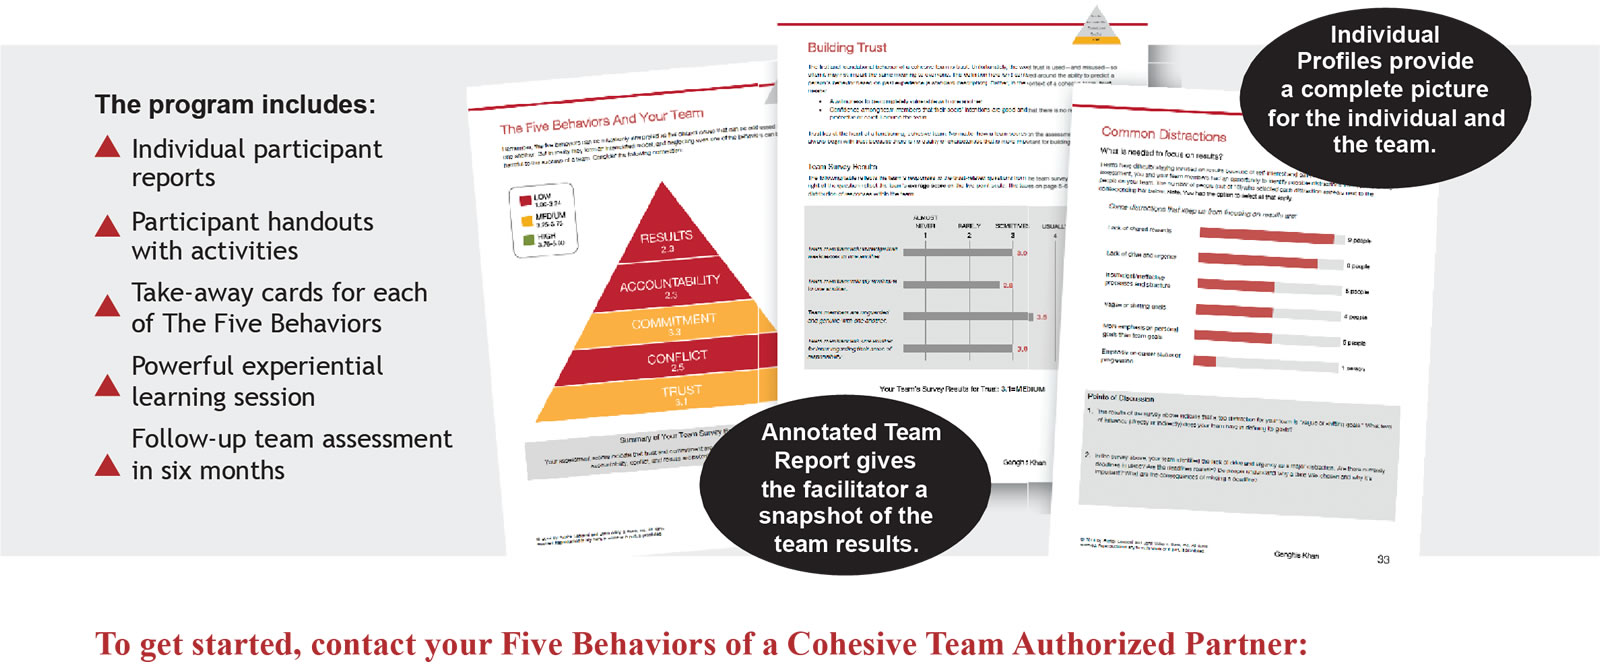 To get started, contact your Five Behaviours of a Cohesive Team Authorized Partner, The Delfi Group